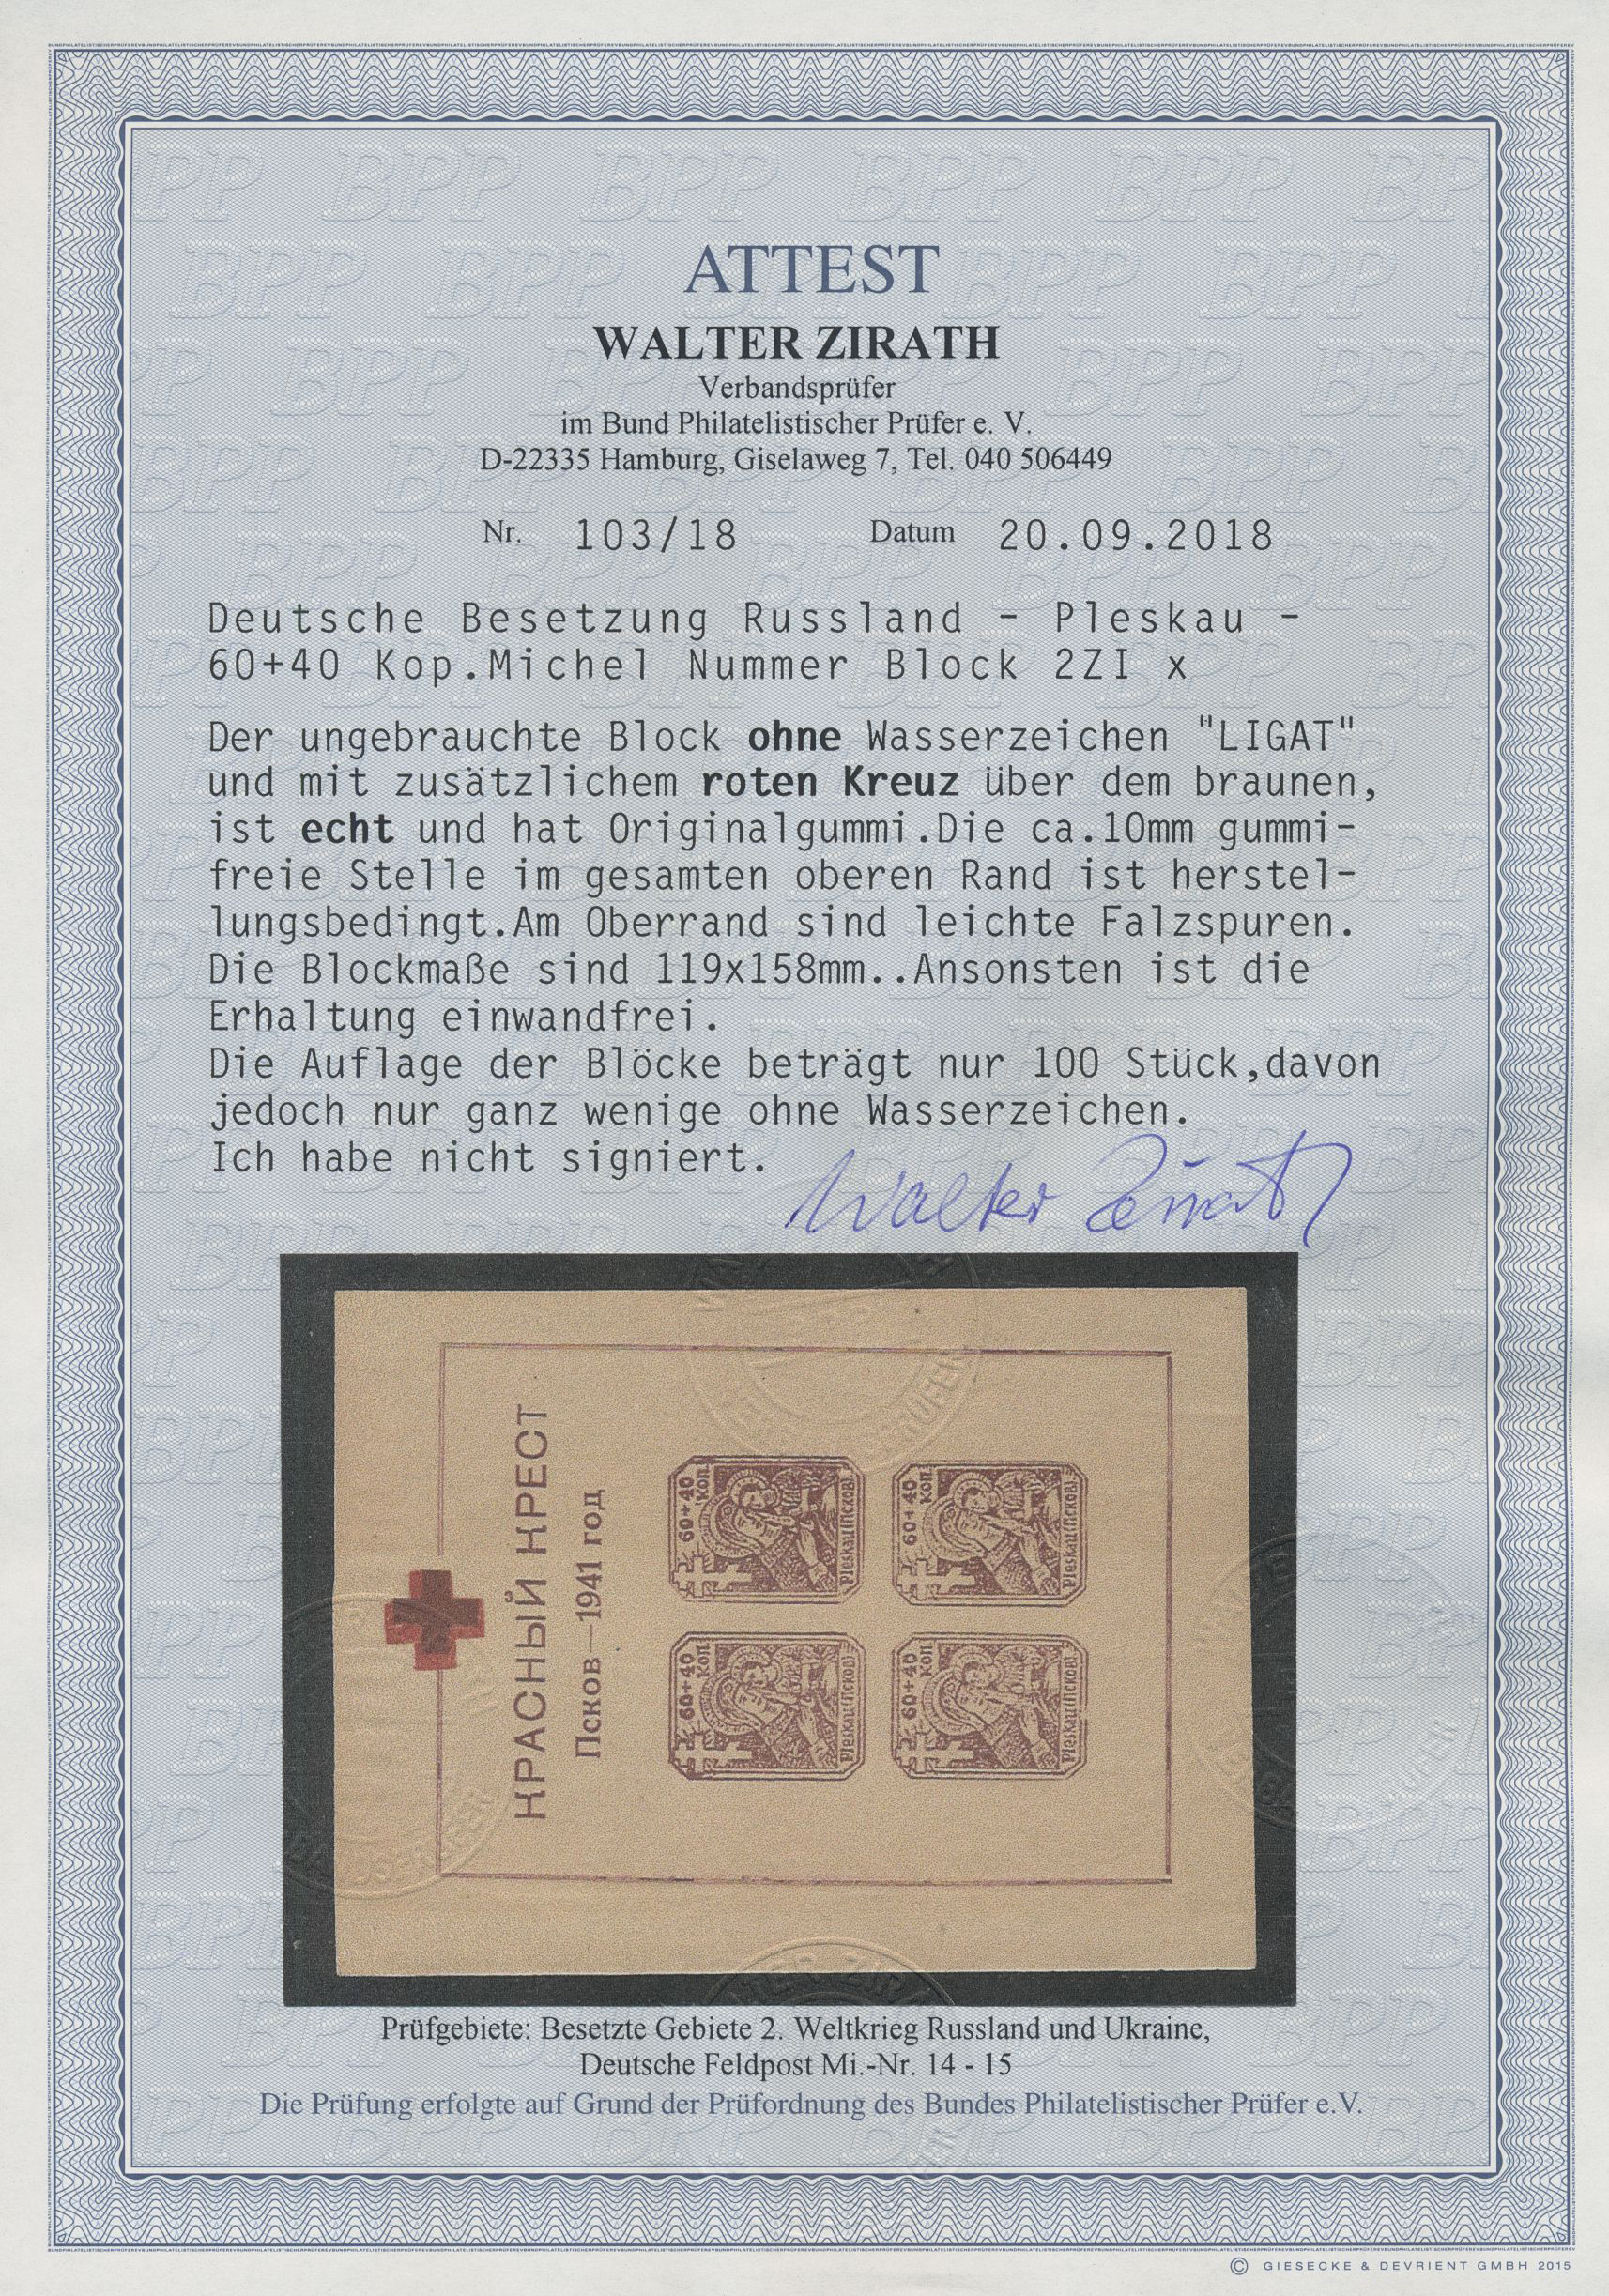 Lot 00223 - Dt. Besetzung II WK - Russland - Pleskau (Pskow)  -  Auktionshaus Christoph Gärtner GmbH & Co. KG Intenational Rarities and contains lots from the collection of Peter Zgonc